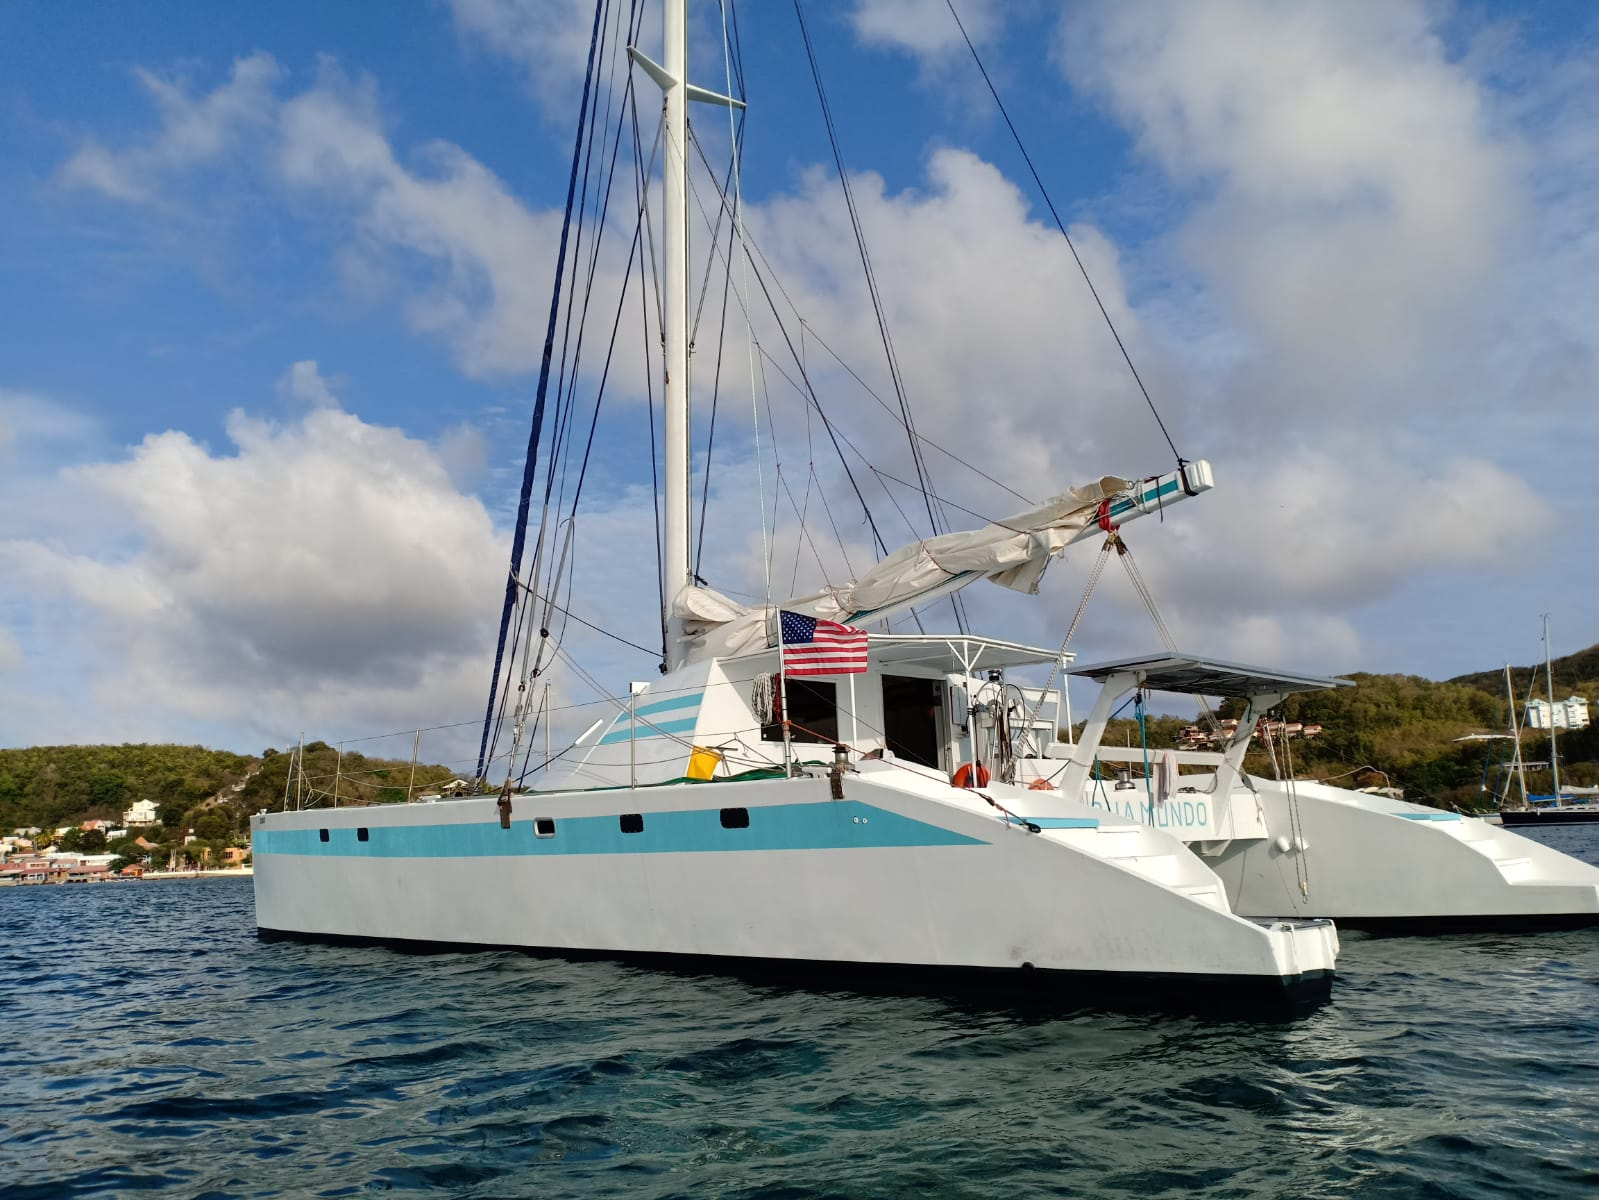 Used Sail Catamaran for Sale 2009 Sourisse Boat Highlights